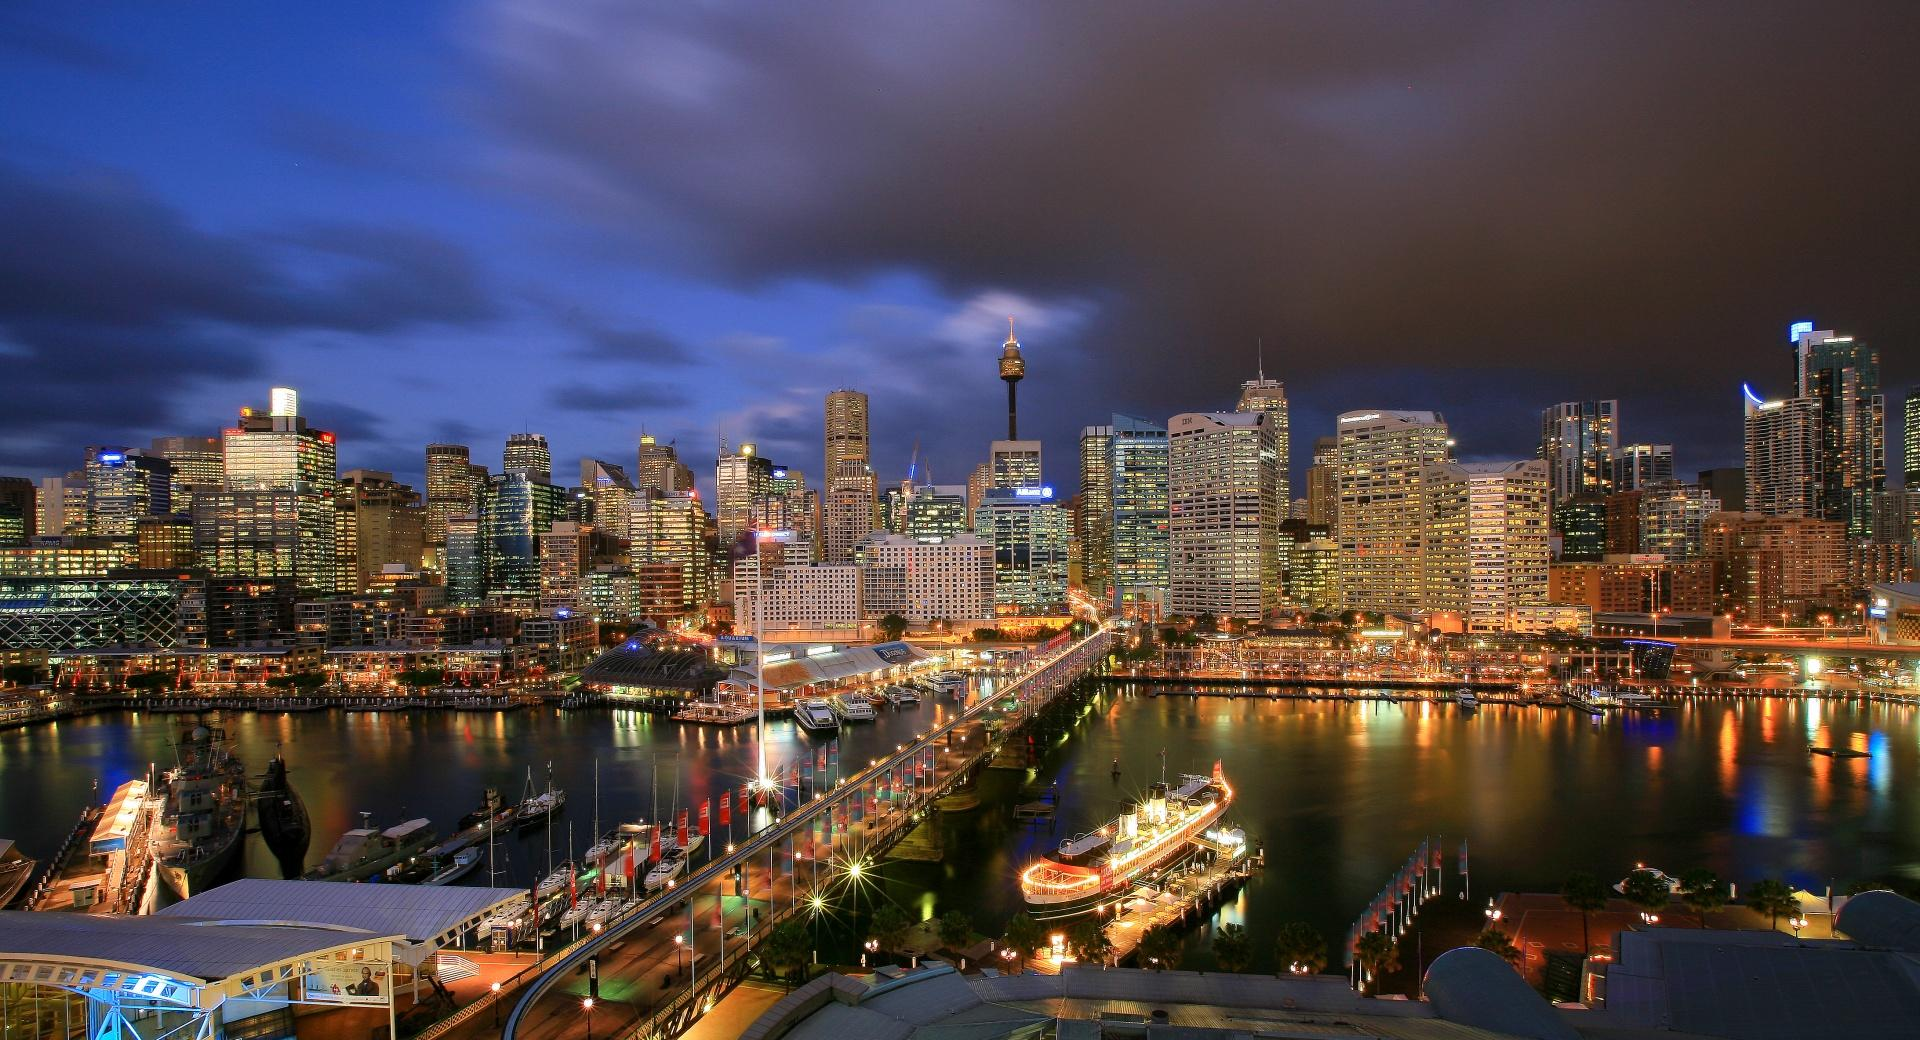 Darling Harbour-Sidney wallpapers HD quality